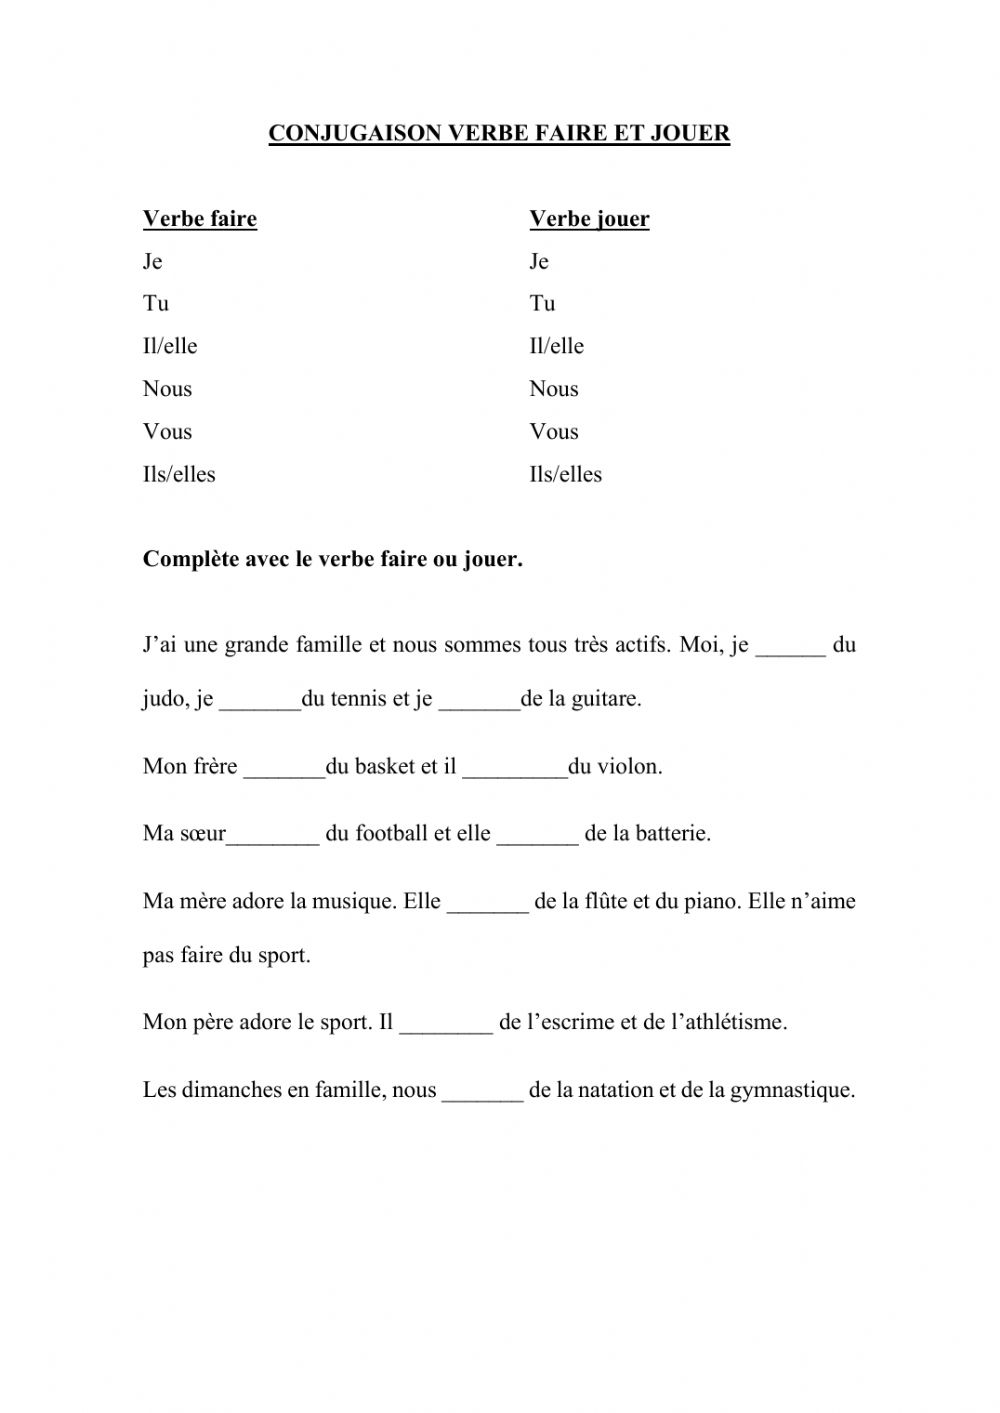 Verbe Faire Et Jouer Interactive Worksheet